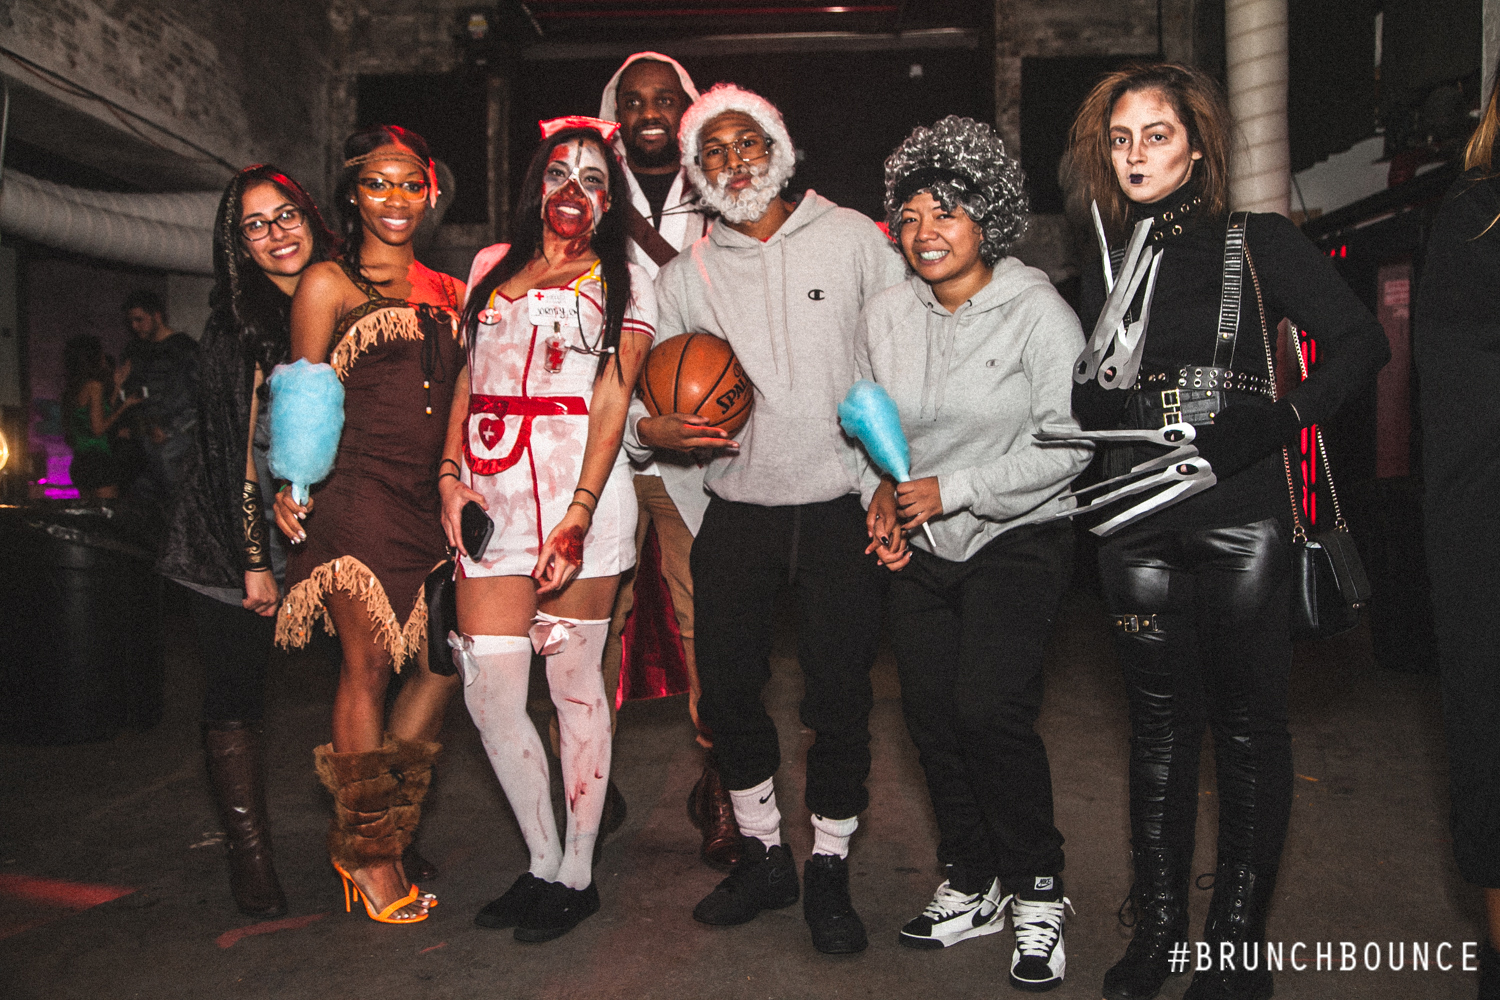 brunch-bounce-x-adidas-originals-halloween-103115_22755142195_o.jpg